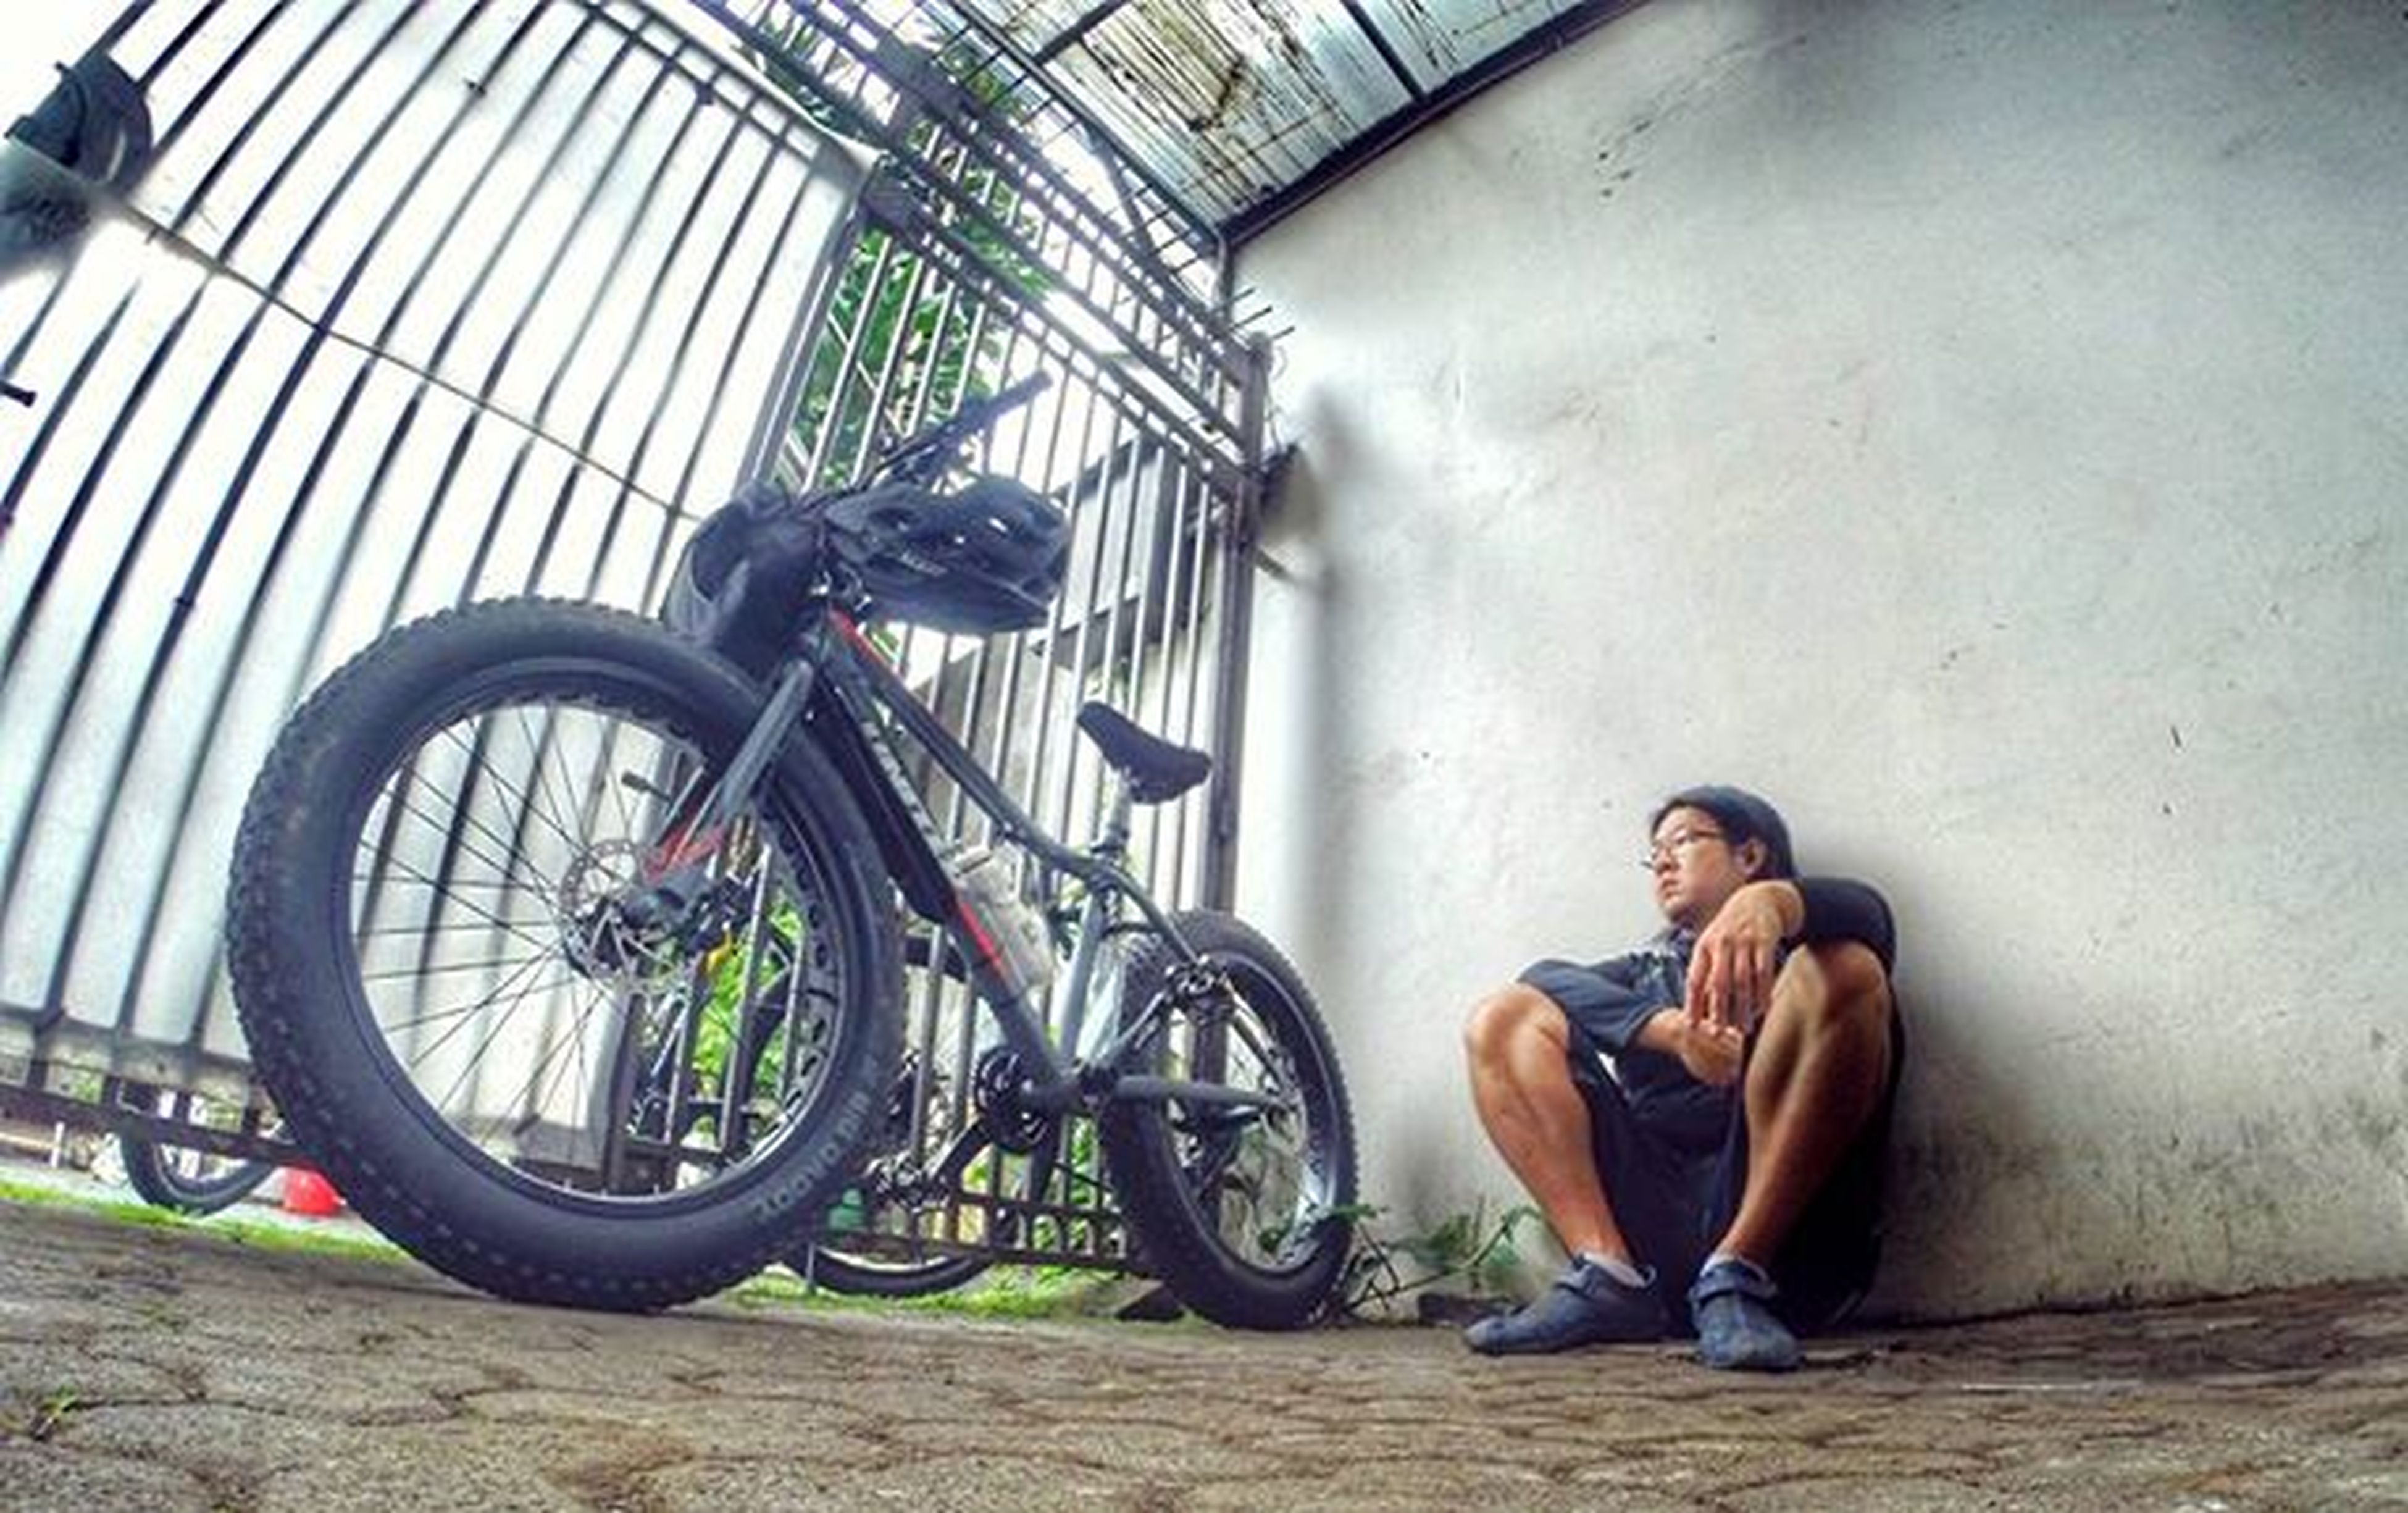 bicycle, land vehicle, mode of transport, transportation, stationary, wall - building feature, parking, architecture, parked, built structure, building exterior, day, street, wheel, leaning, wall, outdoors, side view, riding